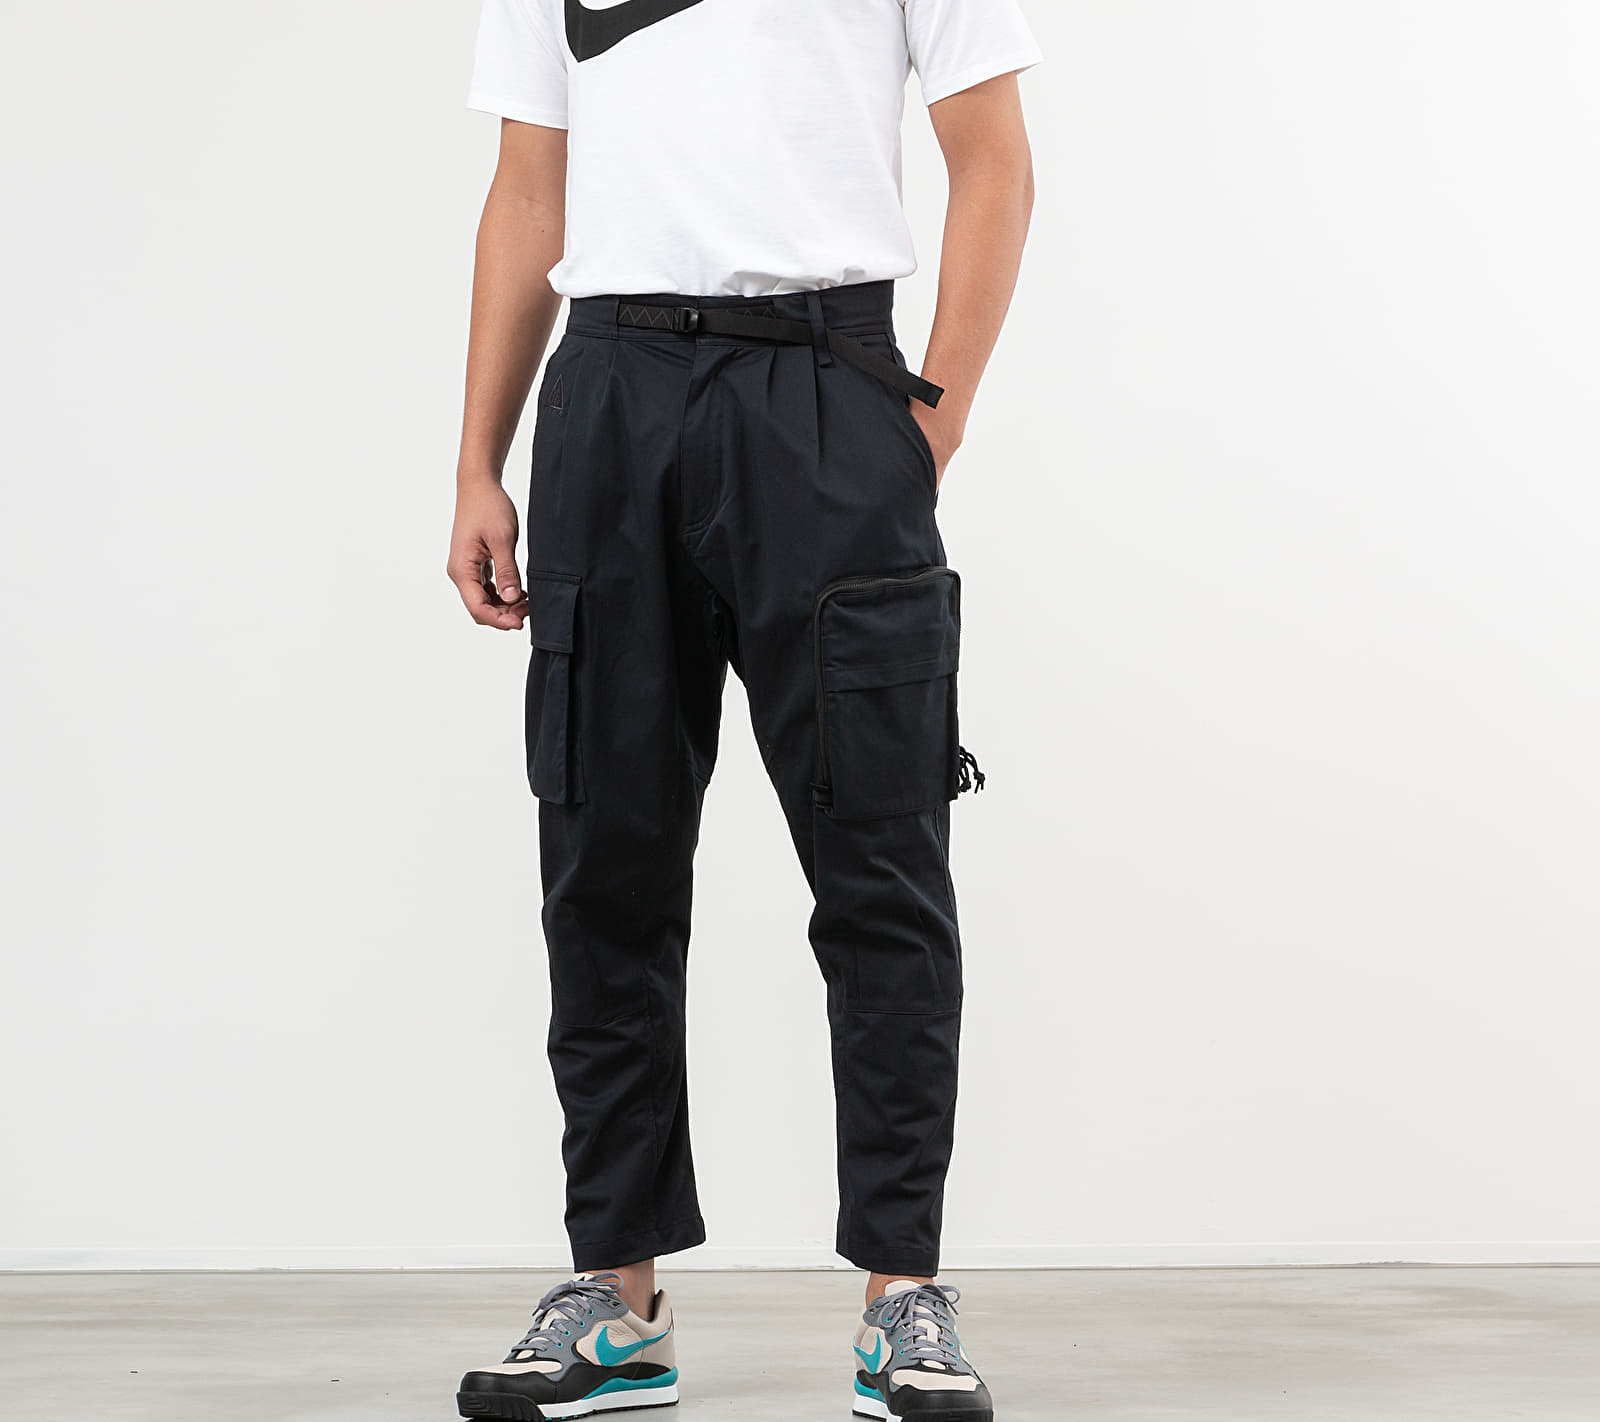 Nike ACG Men's Woven Cargo Trousers Black